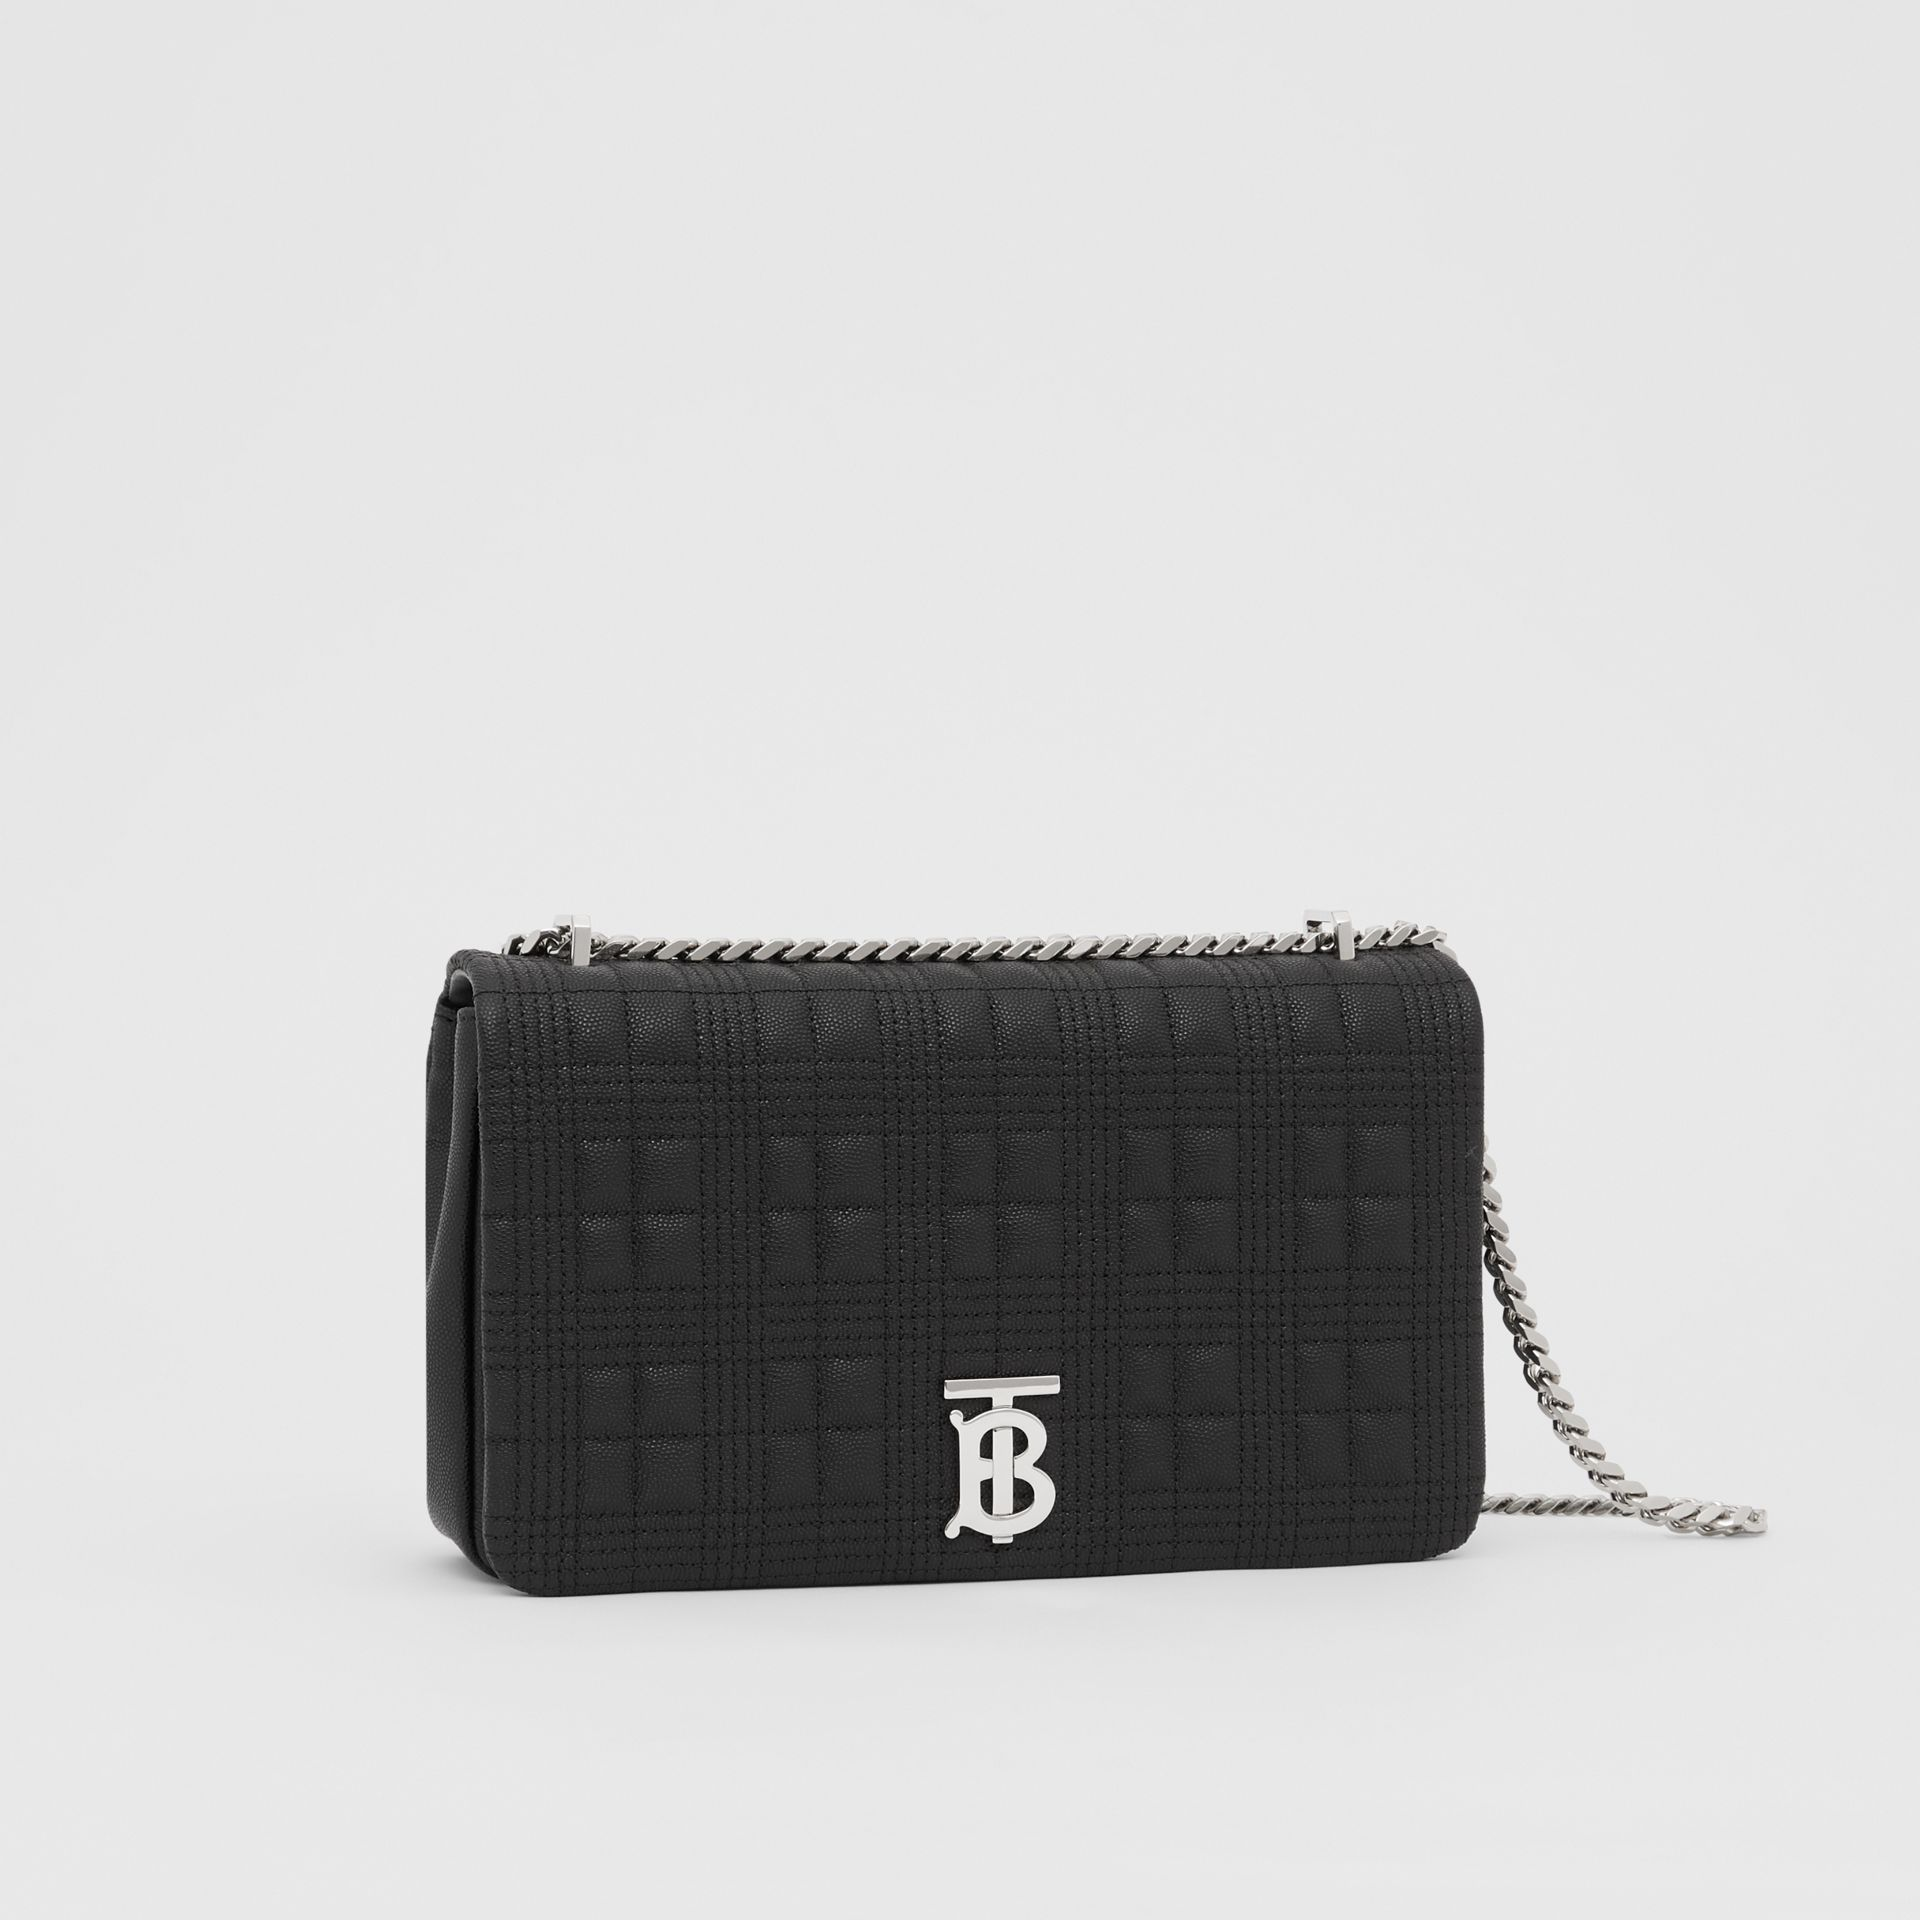 Medium Quilted Grainy Leather Lola Bag in Black/palladium - Women | Burberry United Kingdom - gallery image 6